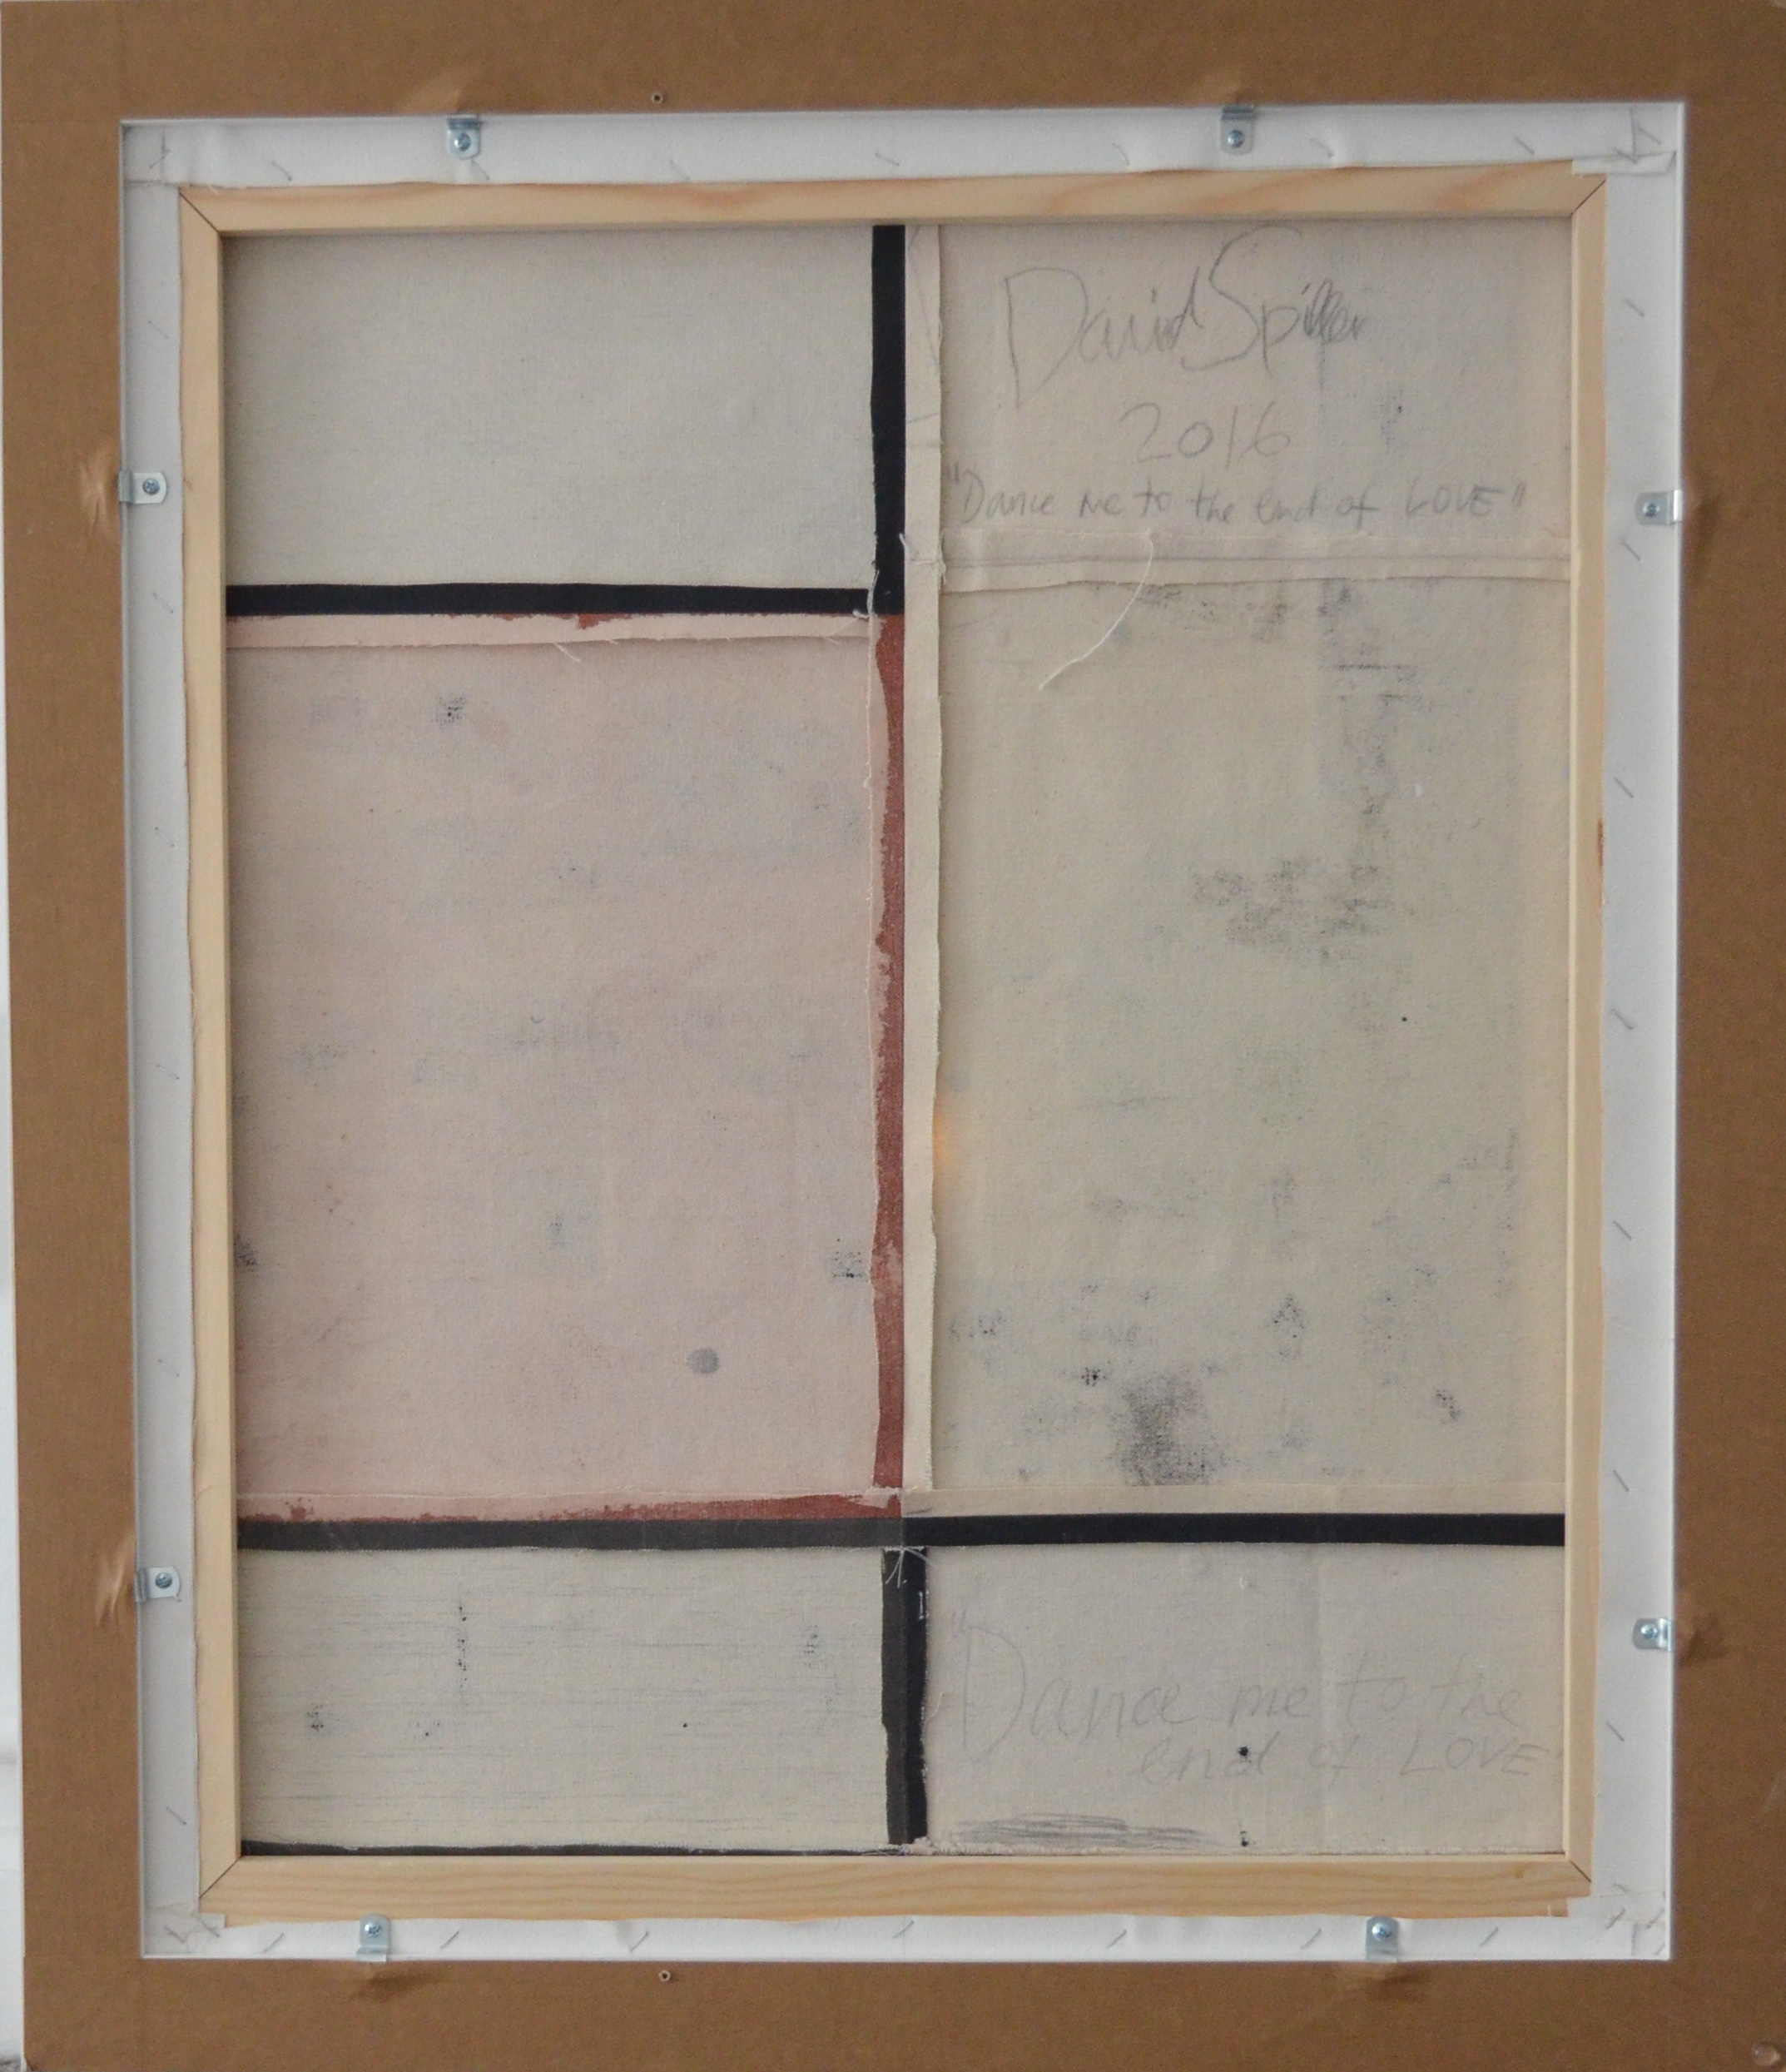 verso of dance me to the end of love by david spiller showing the stitched canvas panels and frame